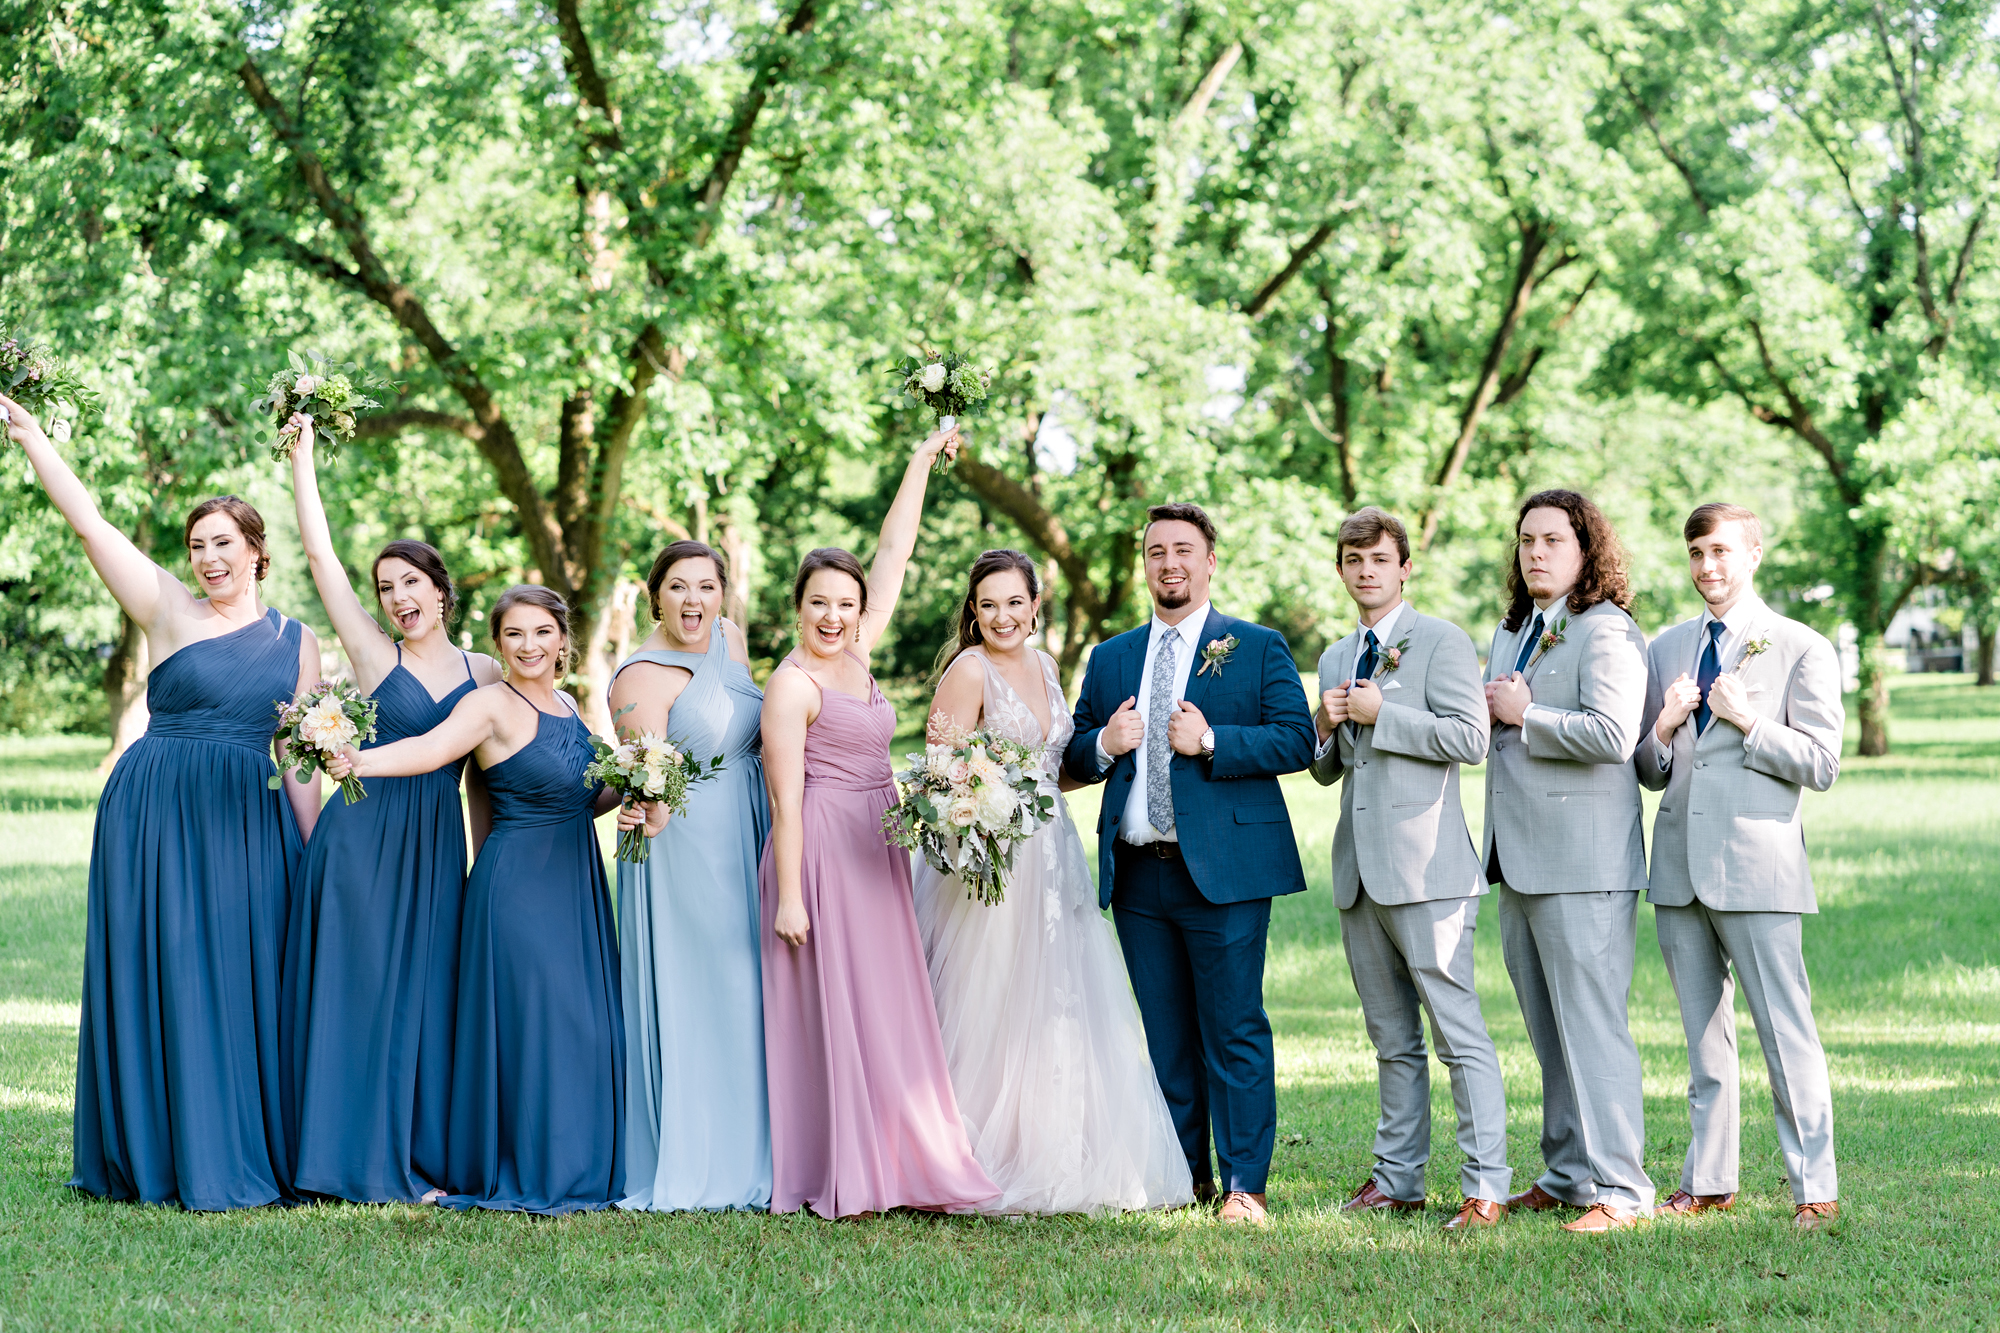 Eclectic-Alabama-Wedding-Photographers-Nick-Drollette-Photography-99.jpg